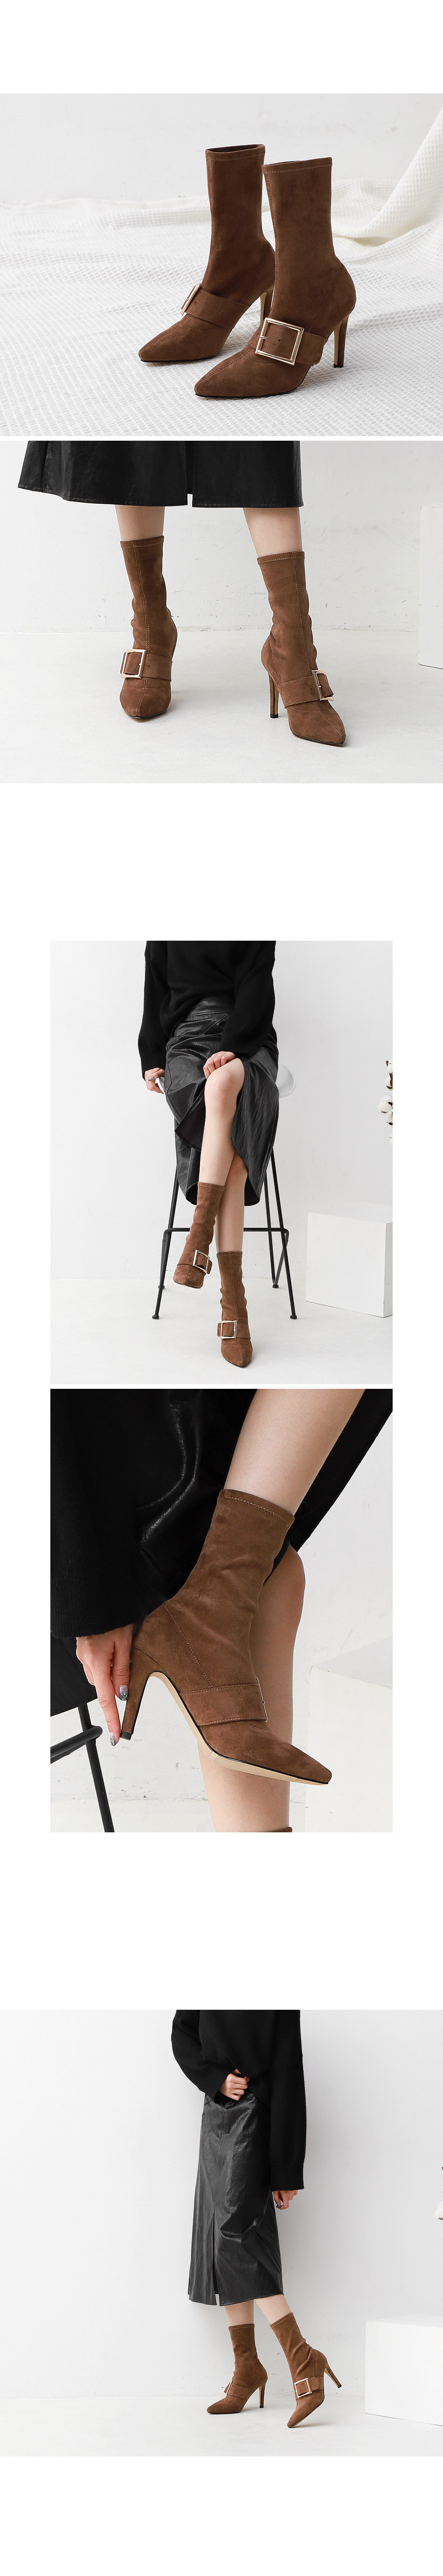 Isshu suede pointed nose buckled Spandex Socks boot heel 1867